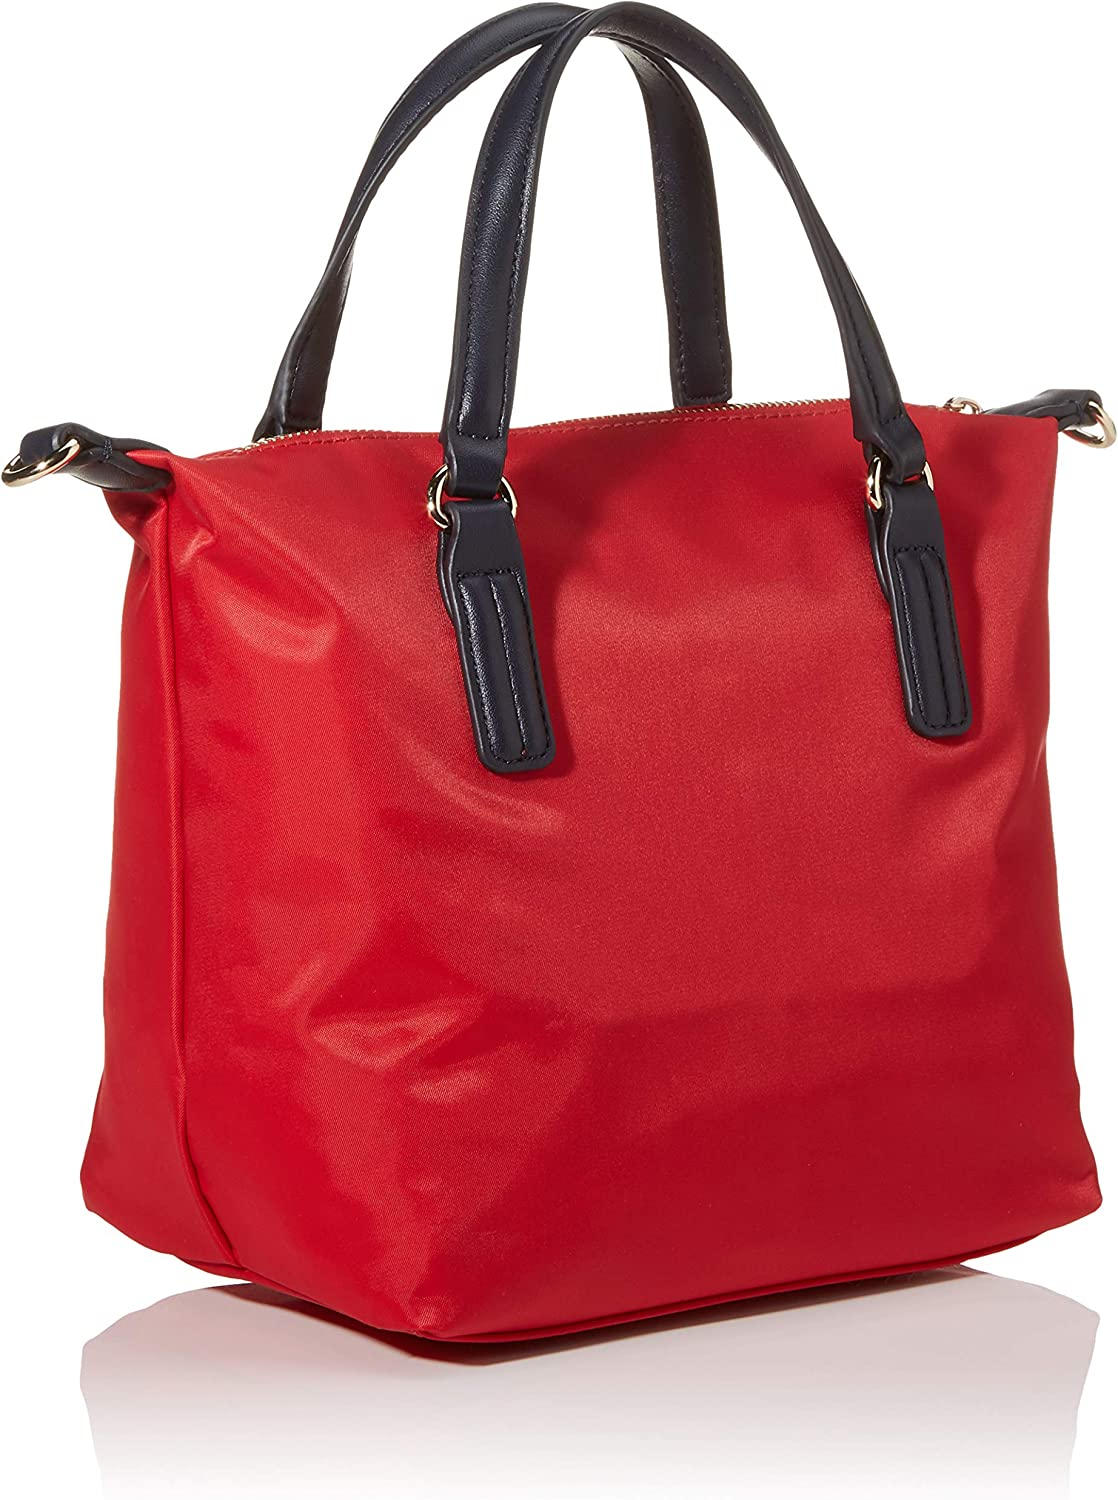 Tommy Hilfiger Womens Poppy Small Tote Tote